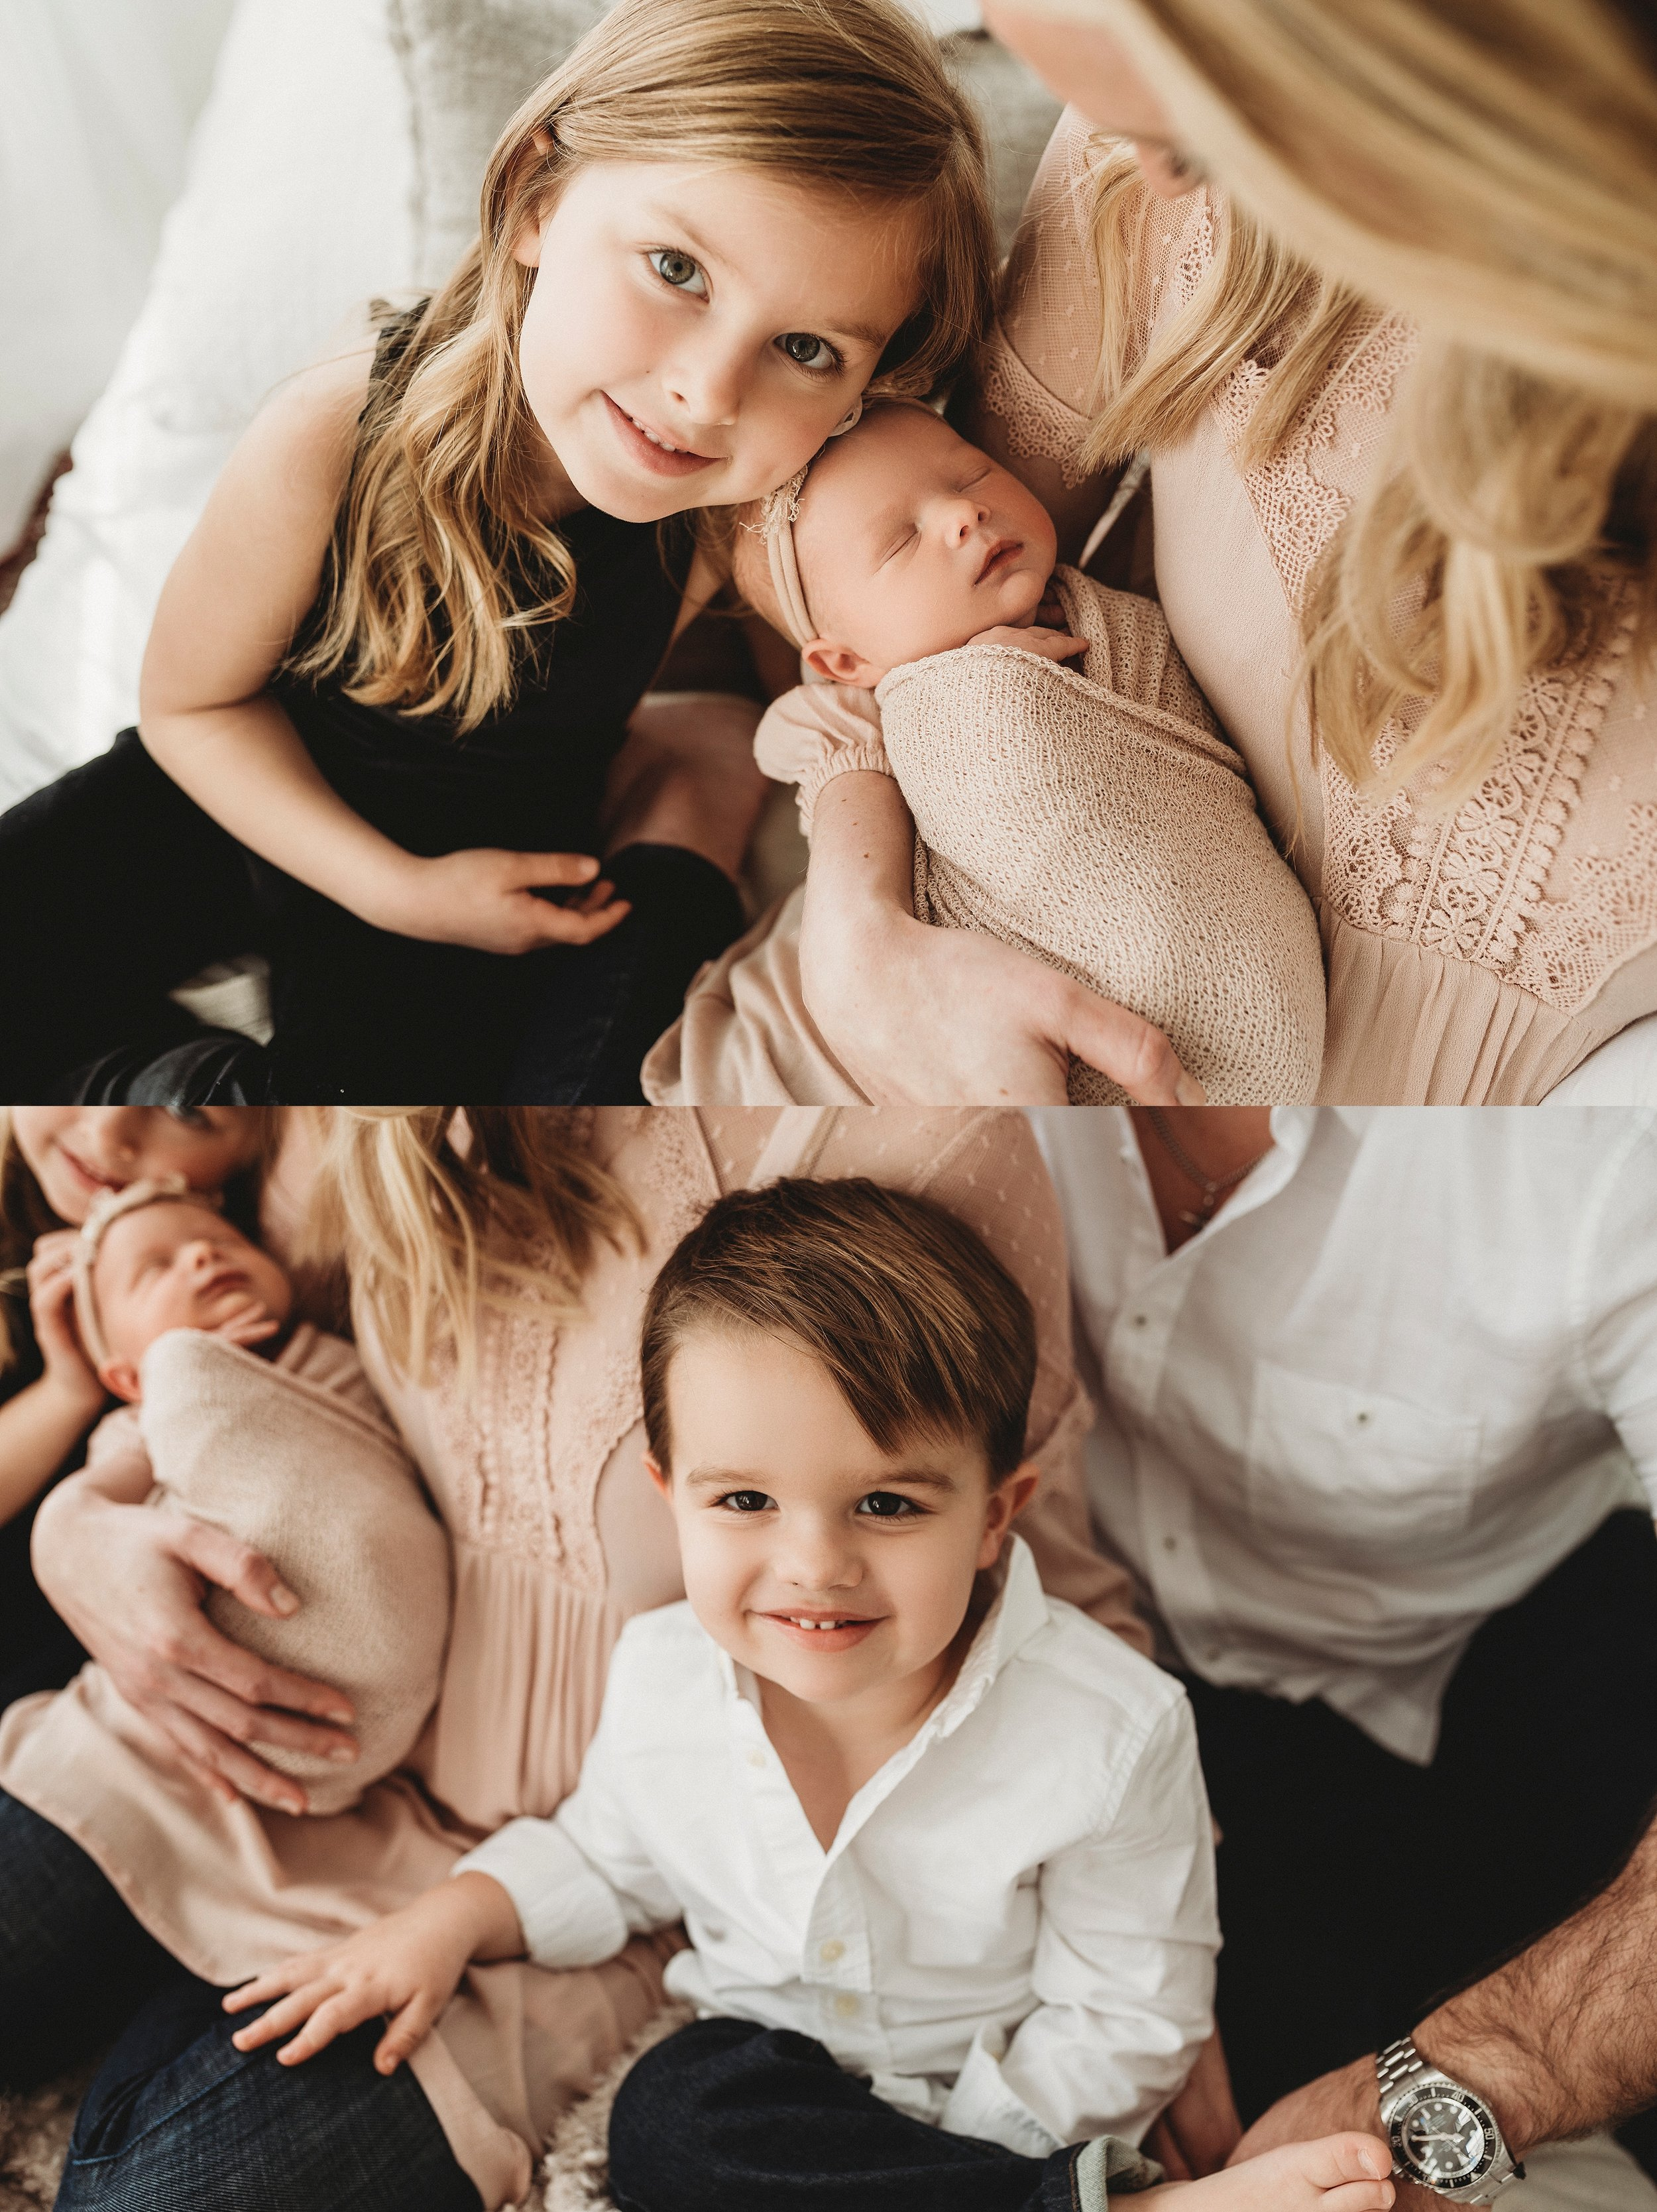 Lifestyle sibling ideas with baby